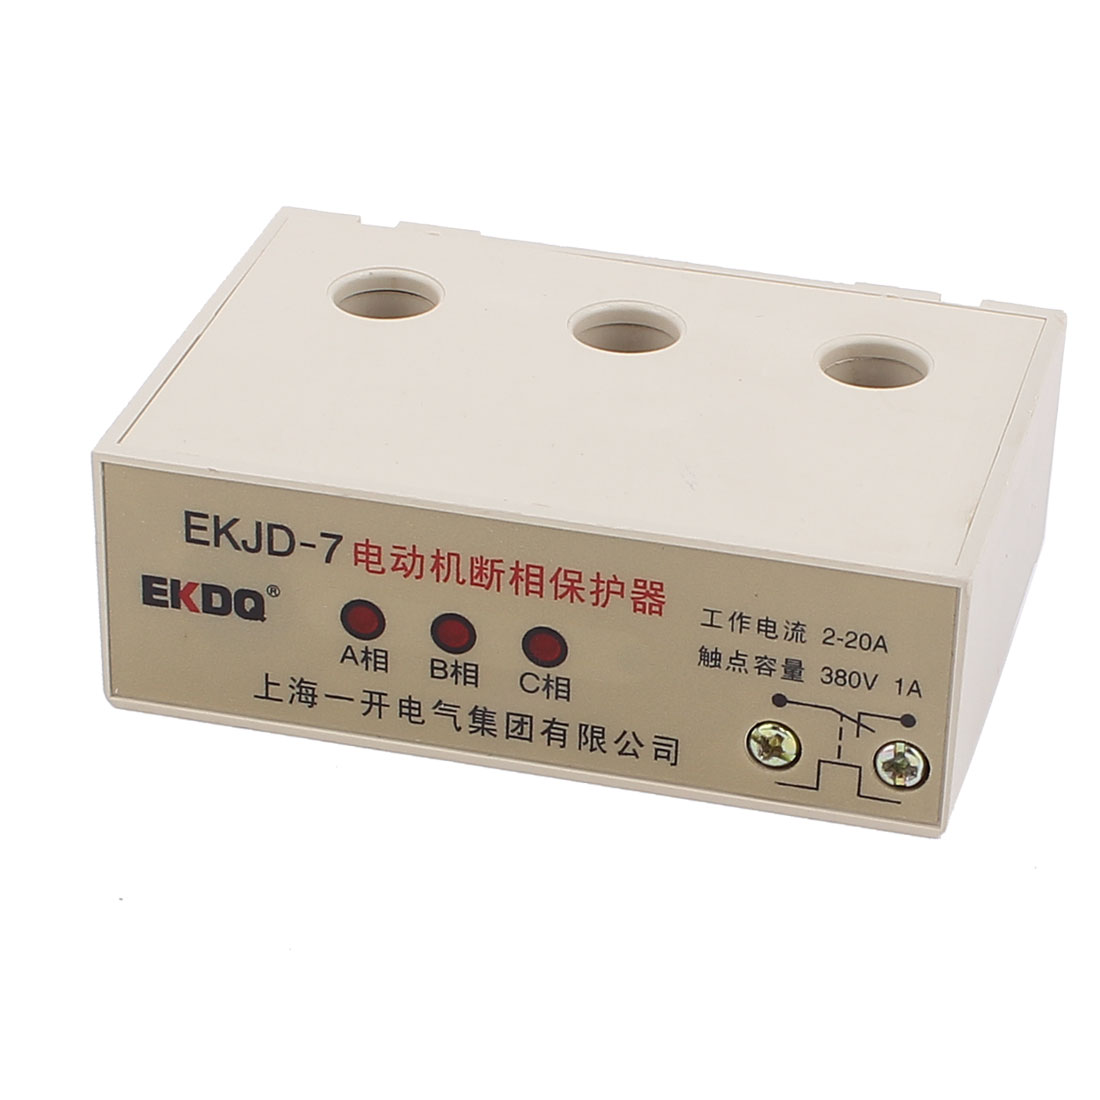 EKJD-7/2-20A 3 Phase 2-20 Ampere Adjustable Current Breaker Motor Circuit Protector Non Power